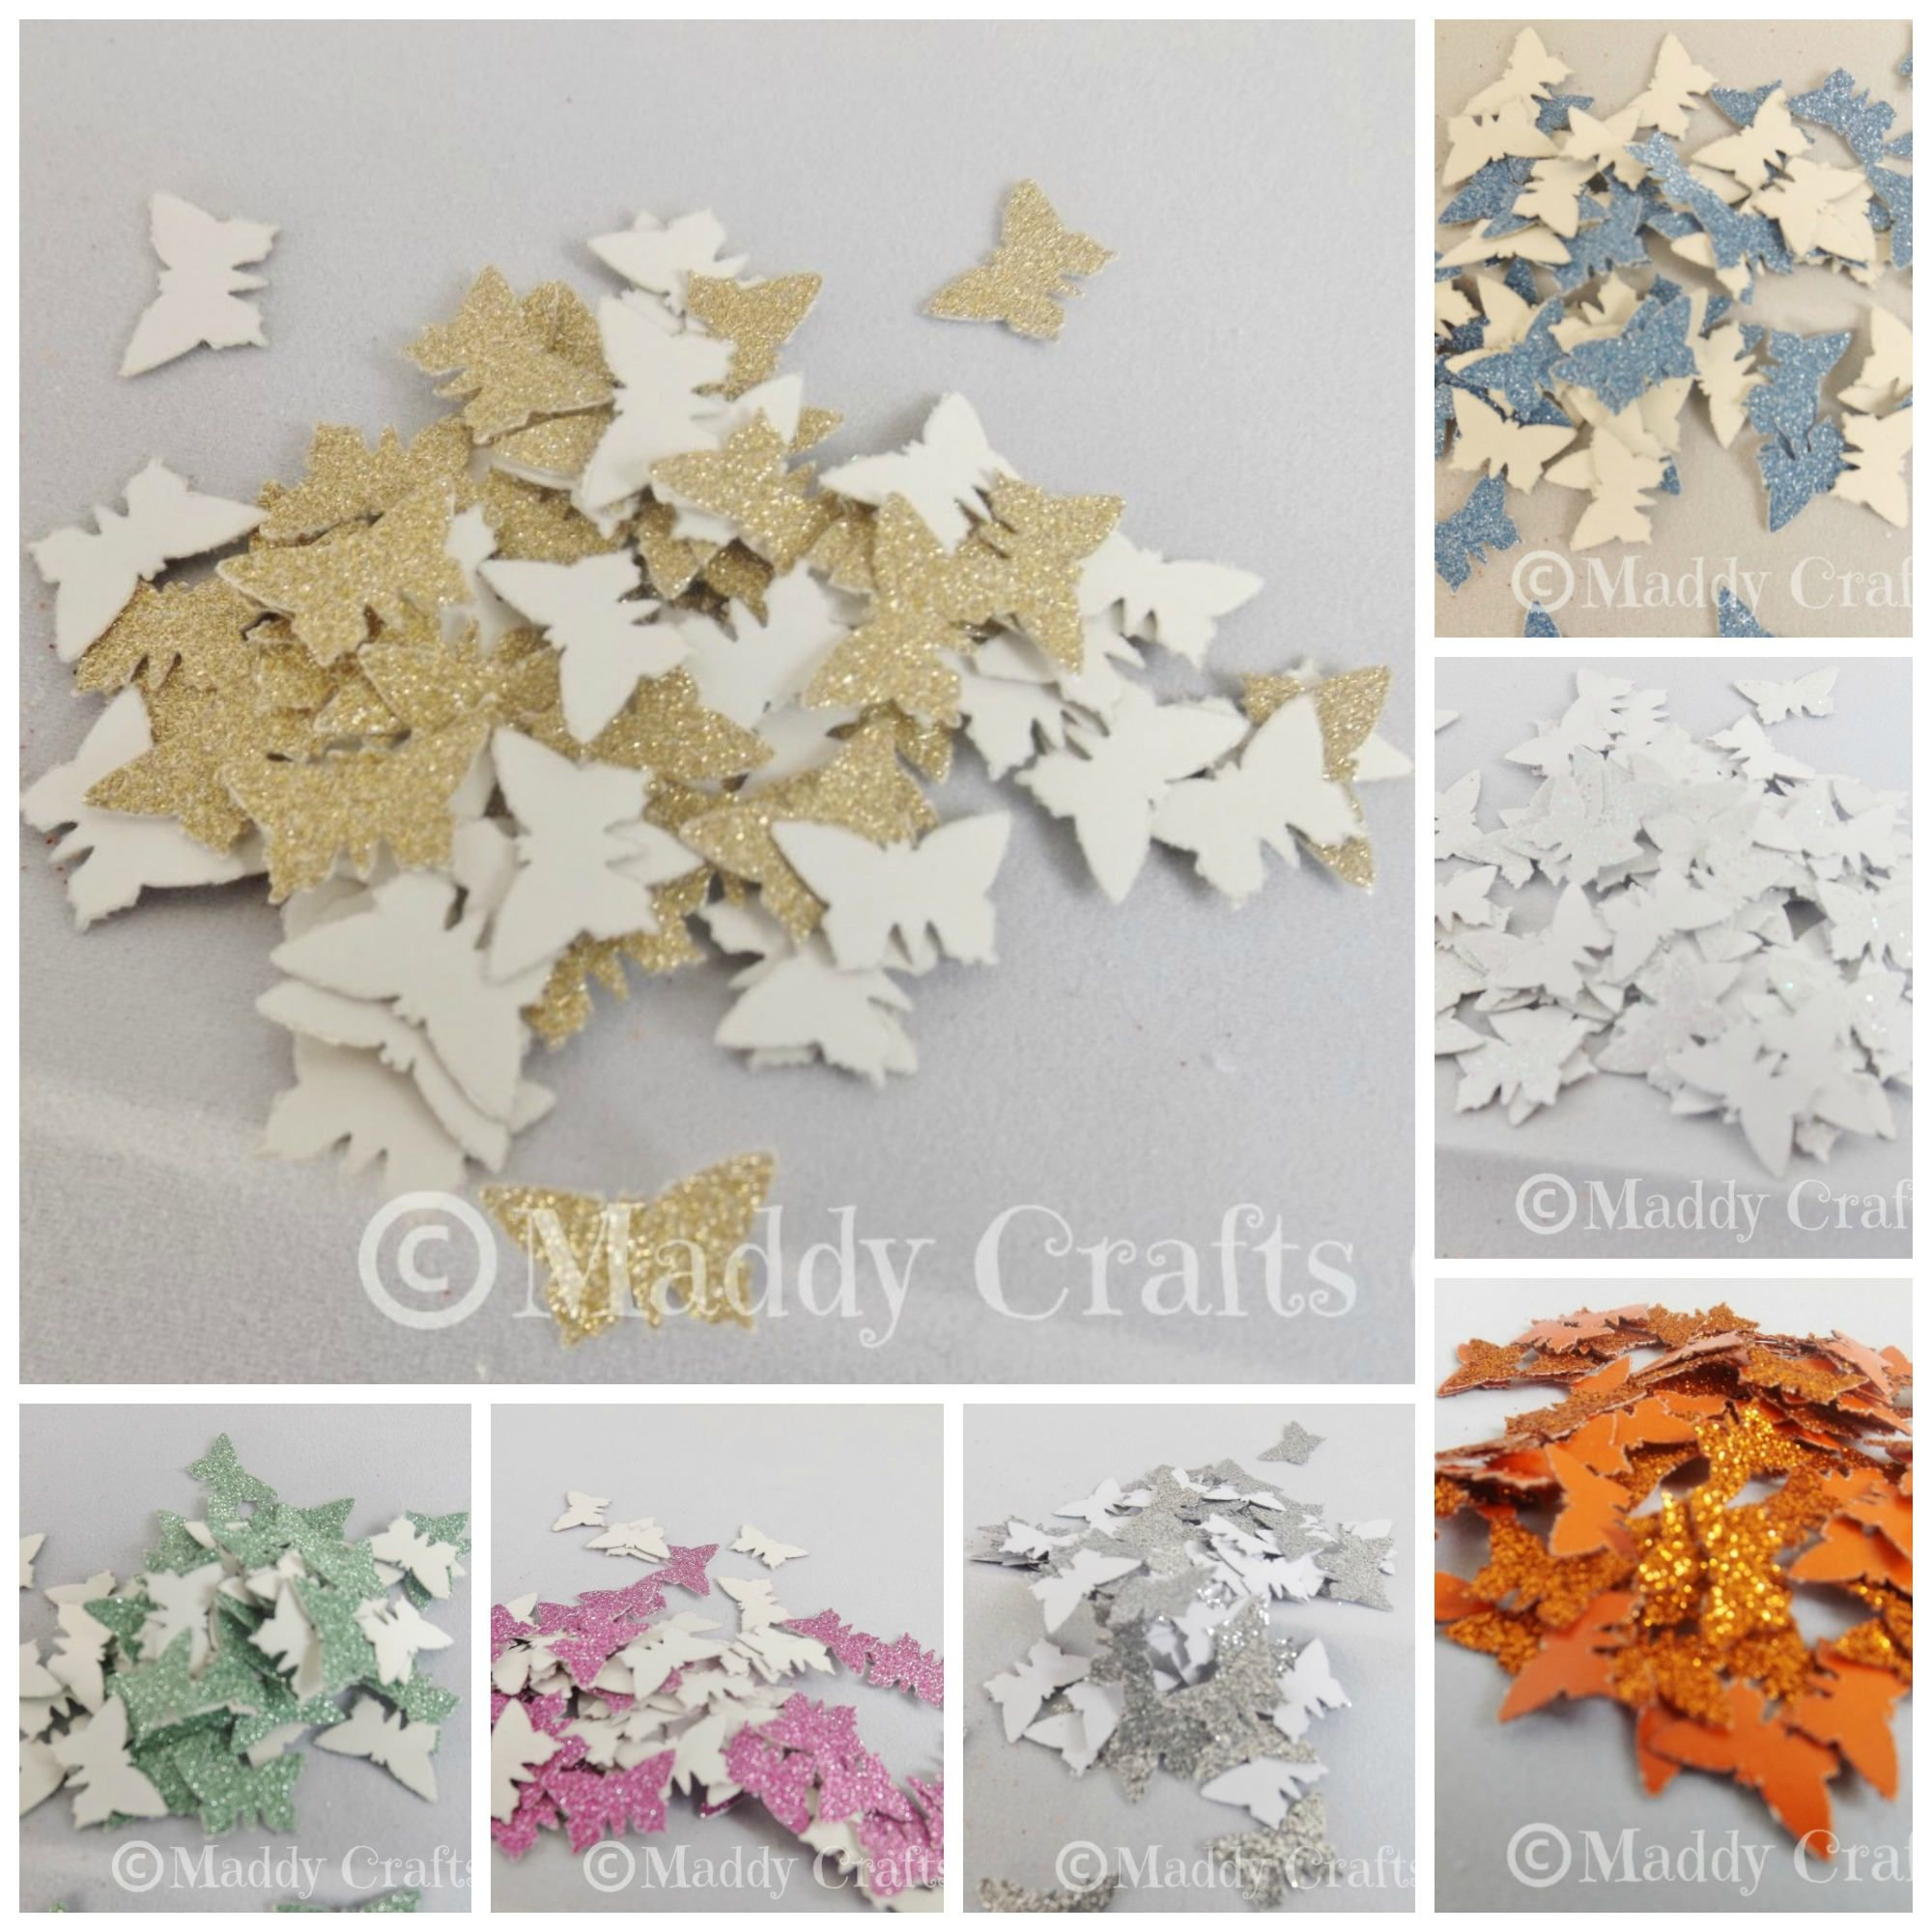 Butterfly card making embellishments scrapbooking decorative butterfly card making embellishments scrapbooking decorative butterflies paper craft supplies by maddycraftsco on etsy jeuxipadfo Images